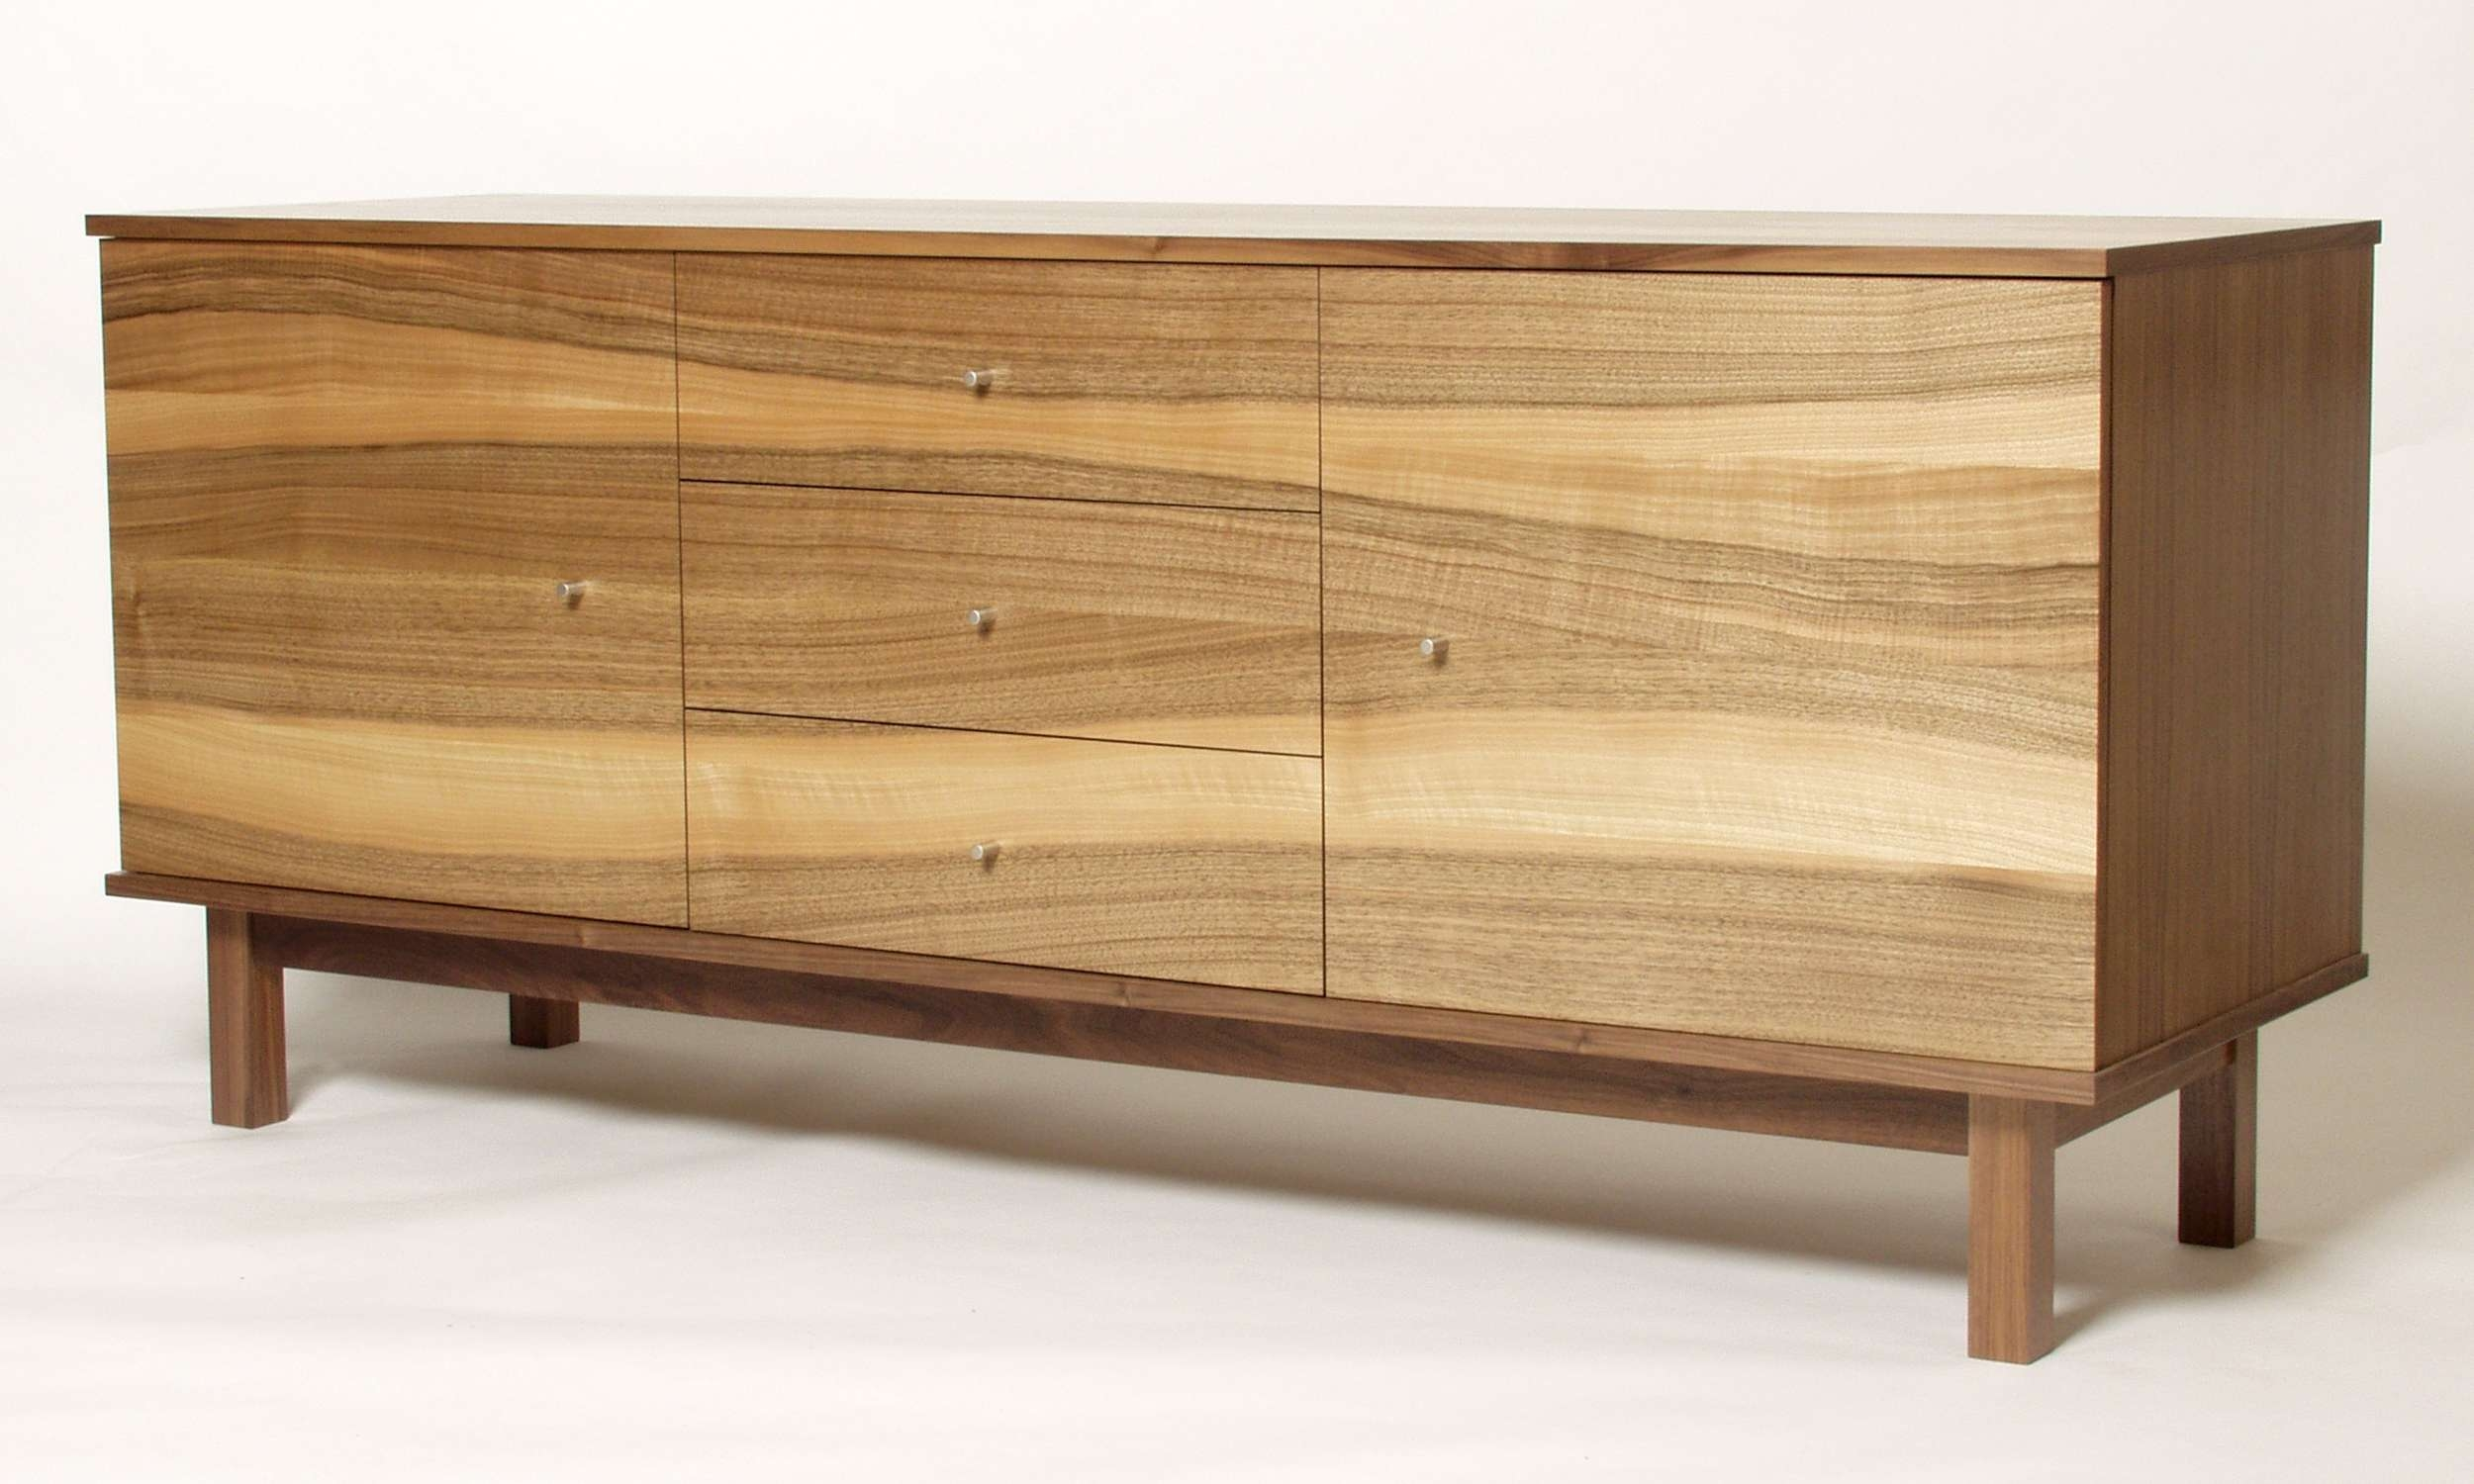 Contemporary And Bespoke Furniture Design – Sable & Ox Within Bespoke Sideboards (View 6 of 20)